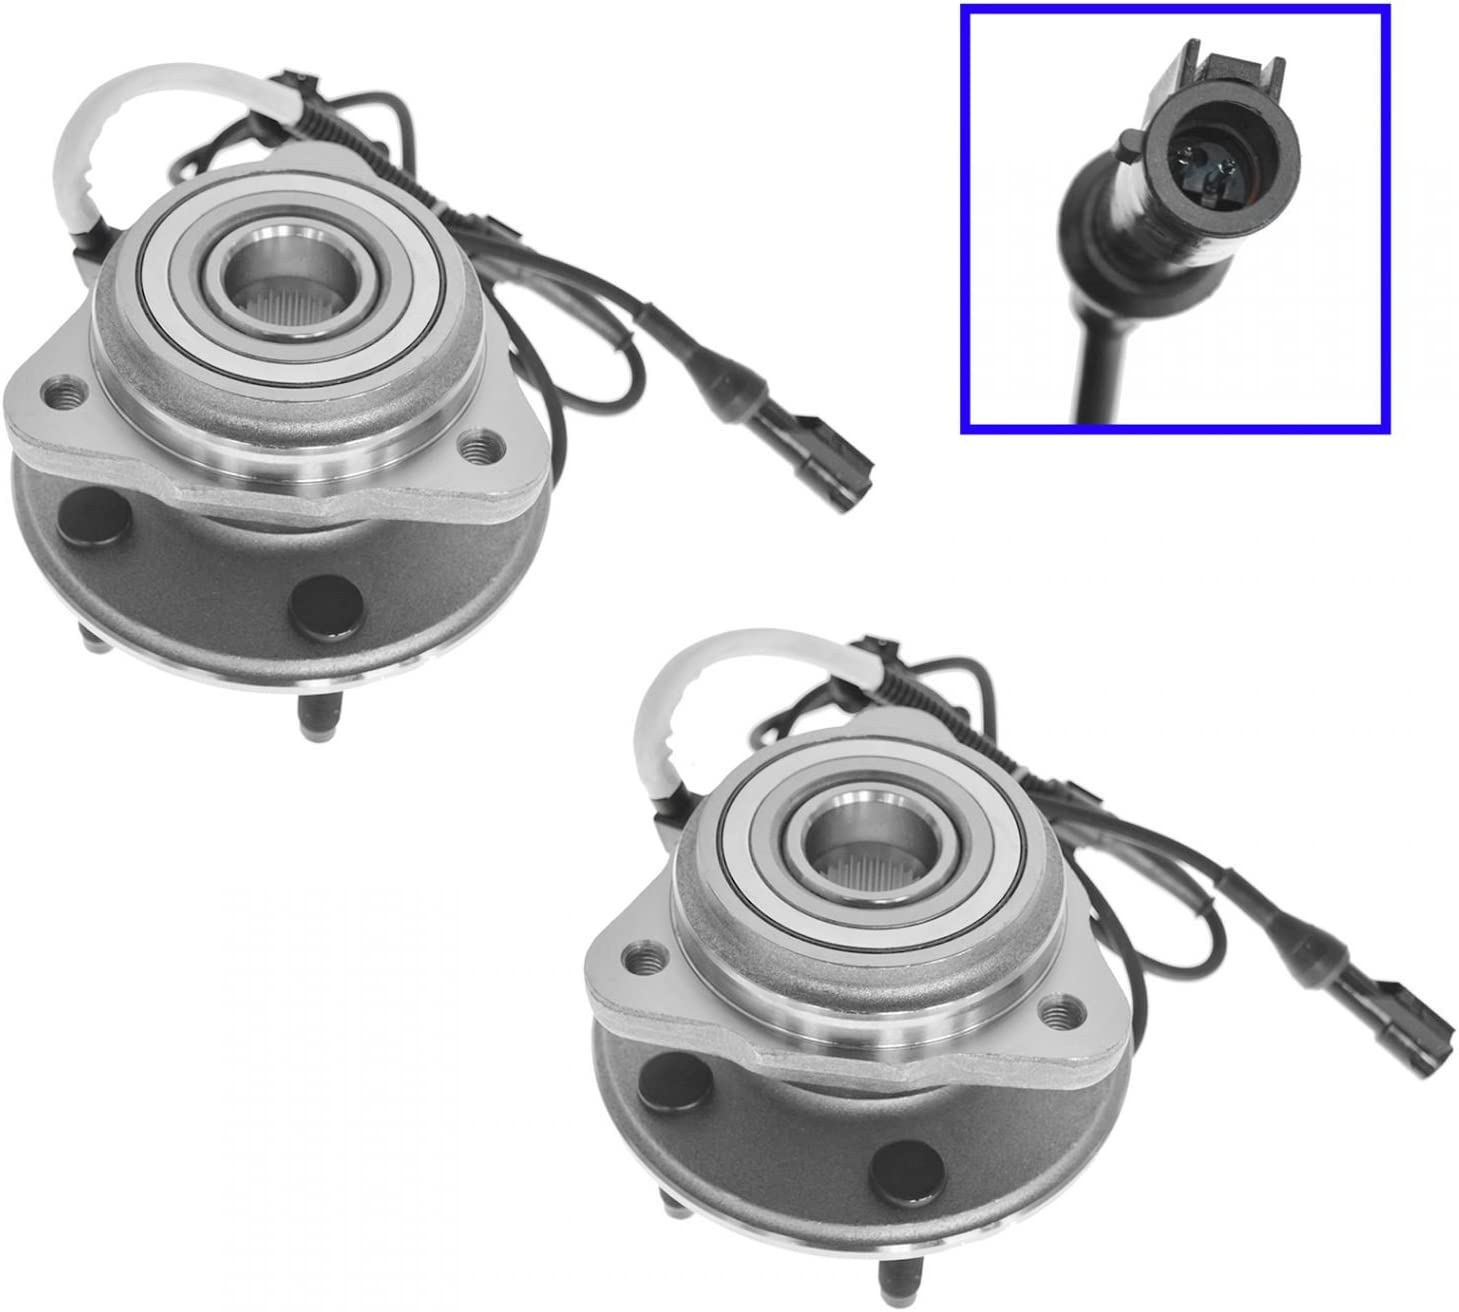 Front 2021new shipping free Wheel Hubs Bearings Pair Set 4W Max 54% OFF Mountaineer for Explorer